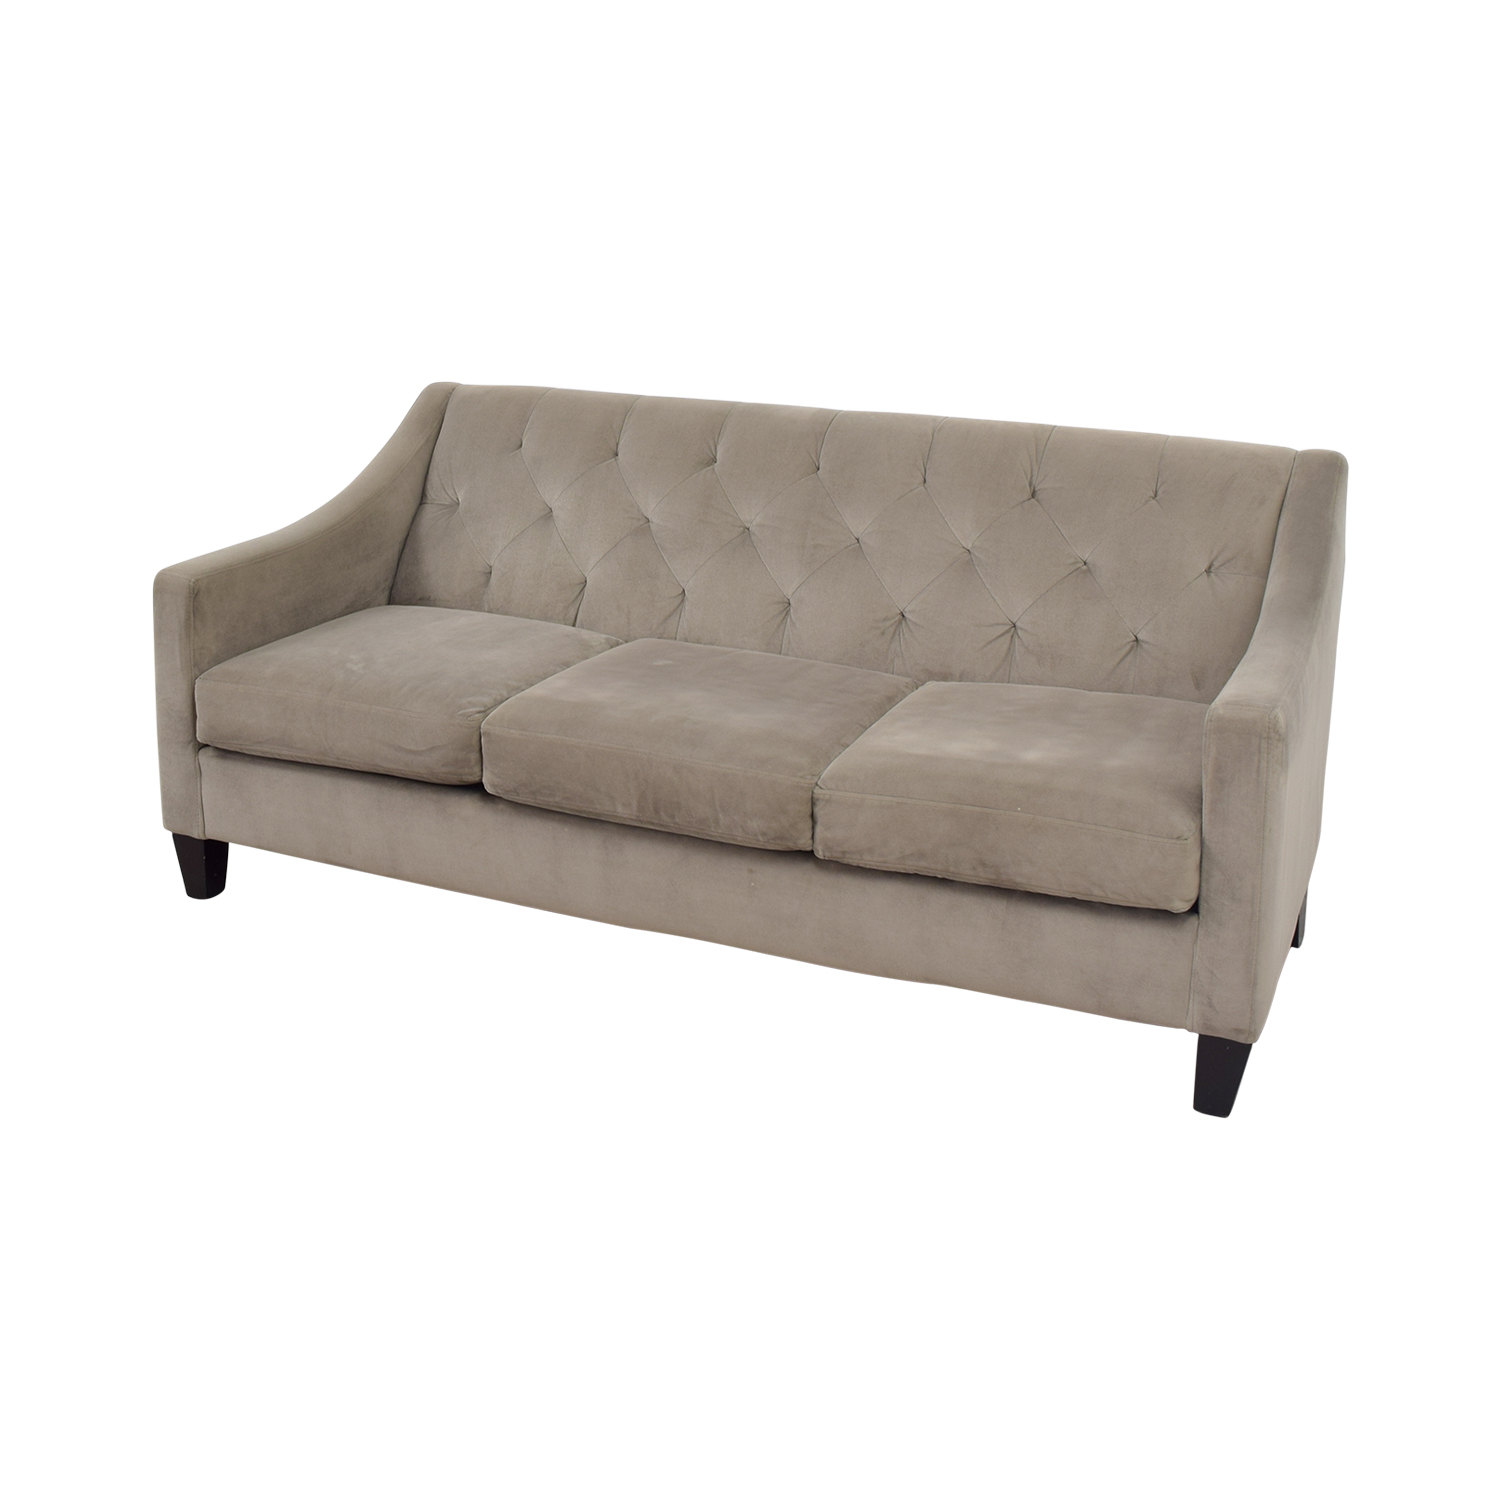 Macys Macys Gray Microfiber Tufted Three-Cushion Couch grey